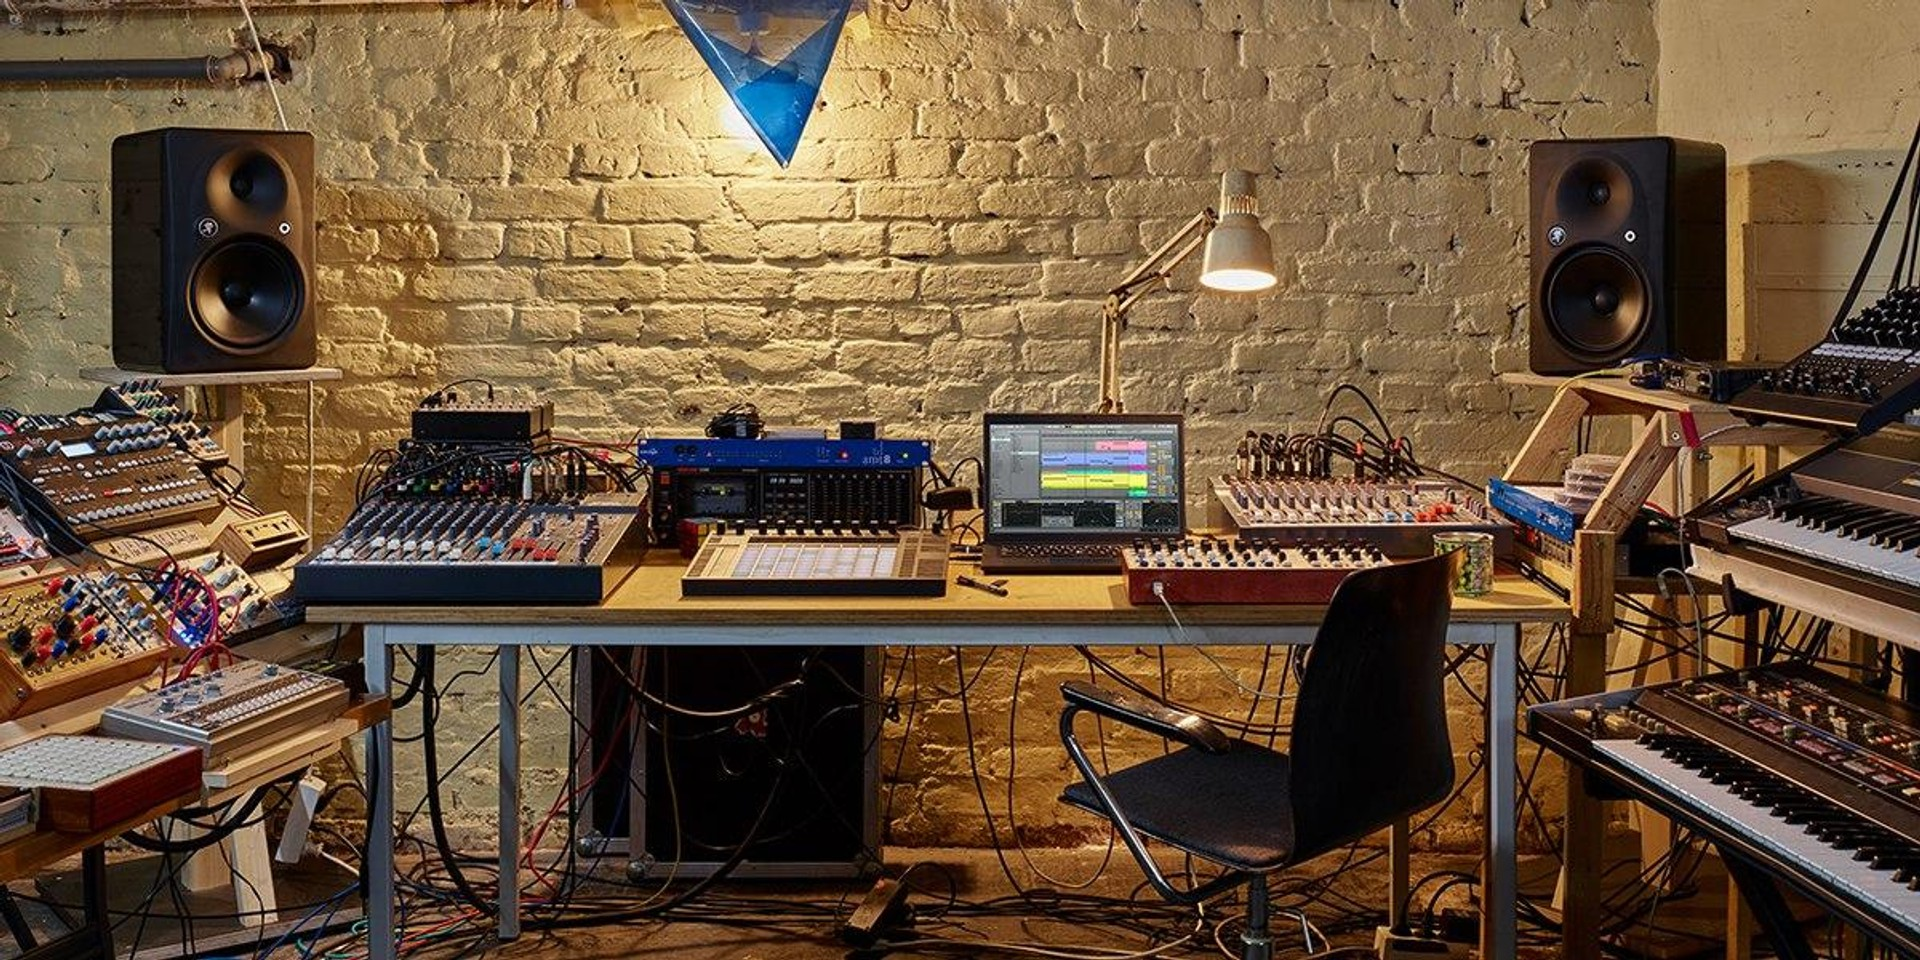 Ableton Live 10 Suite is now available free for 90 days